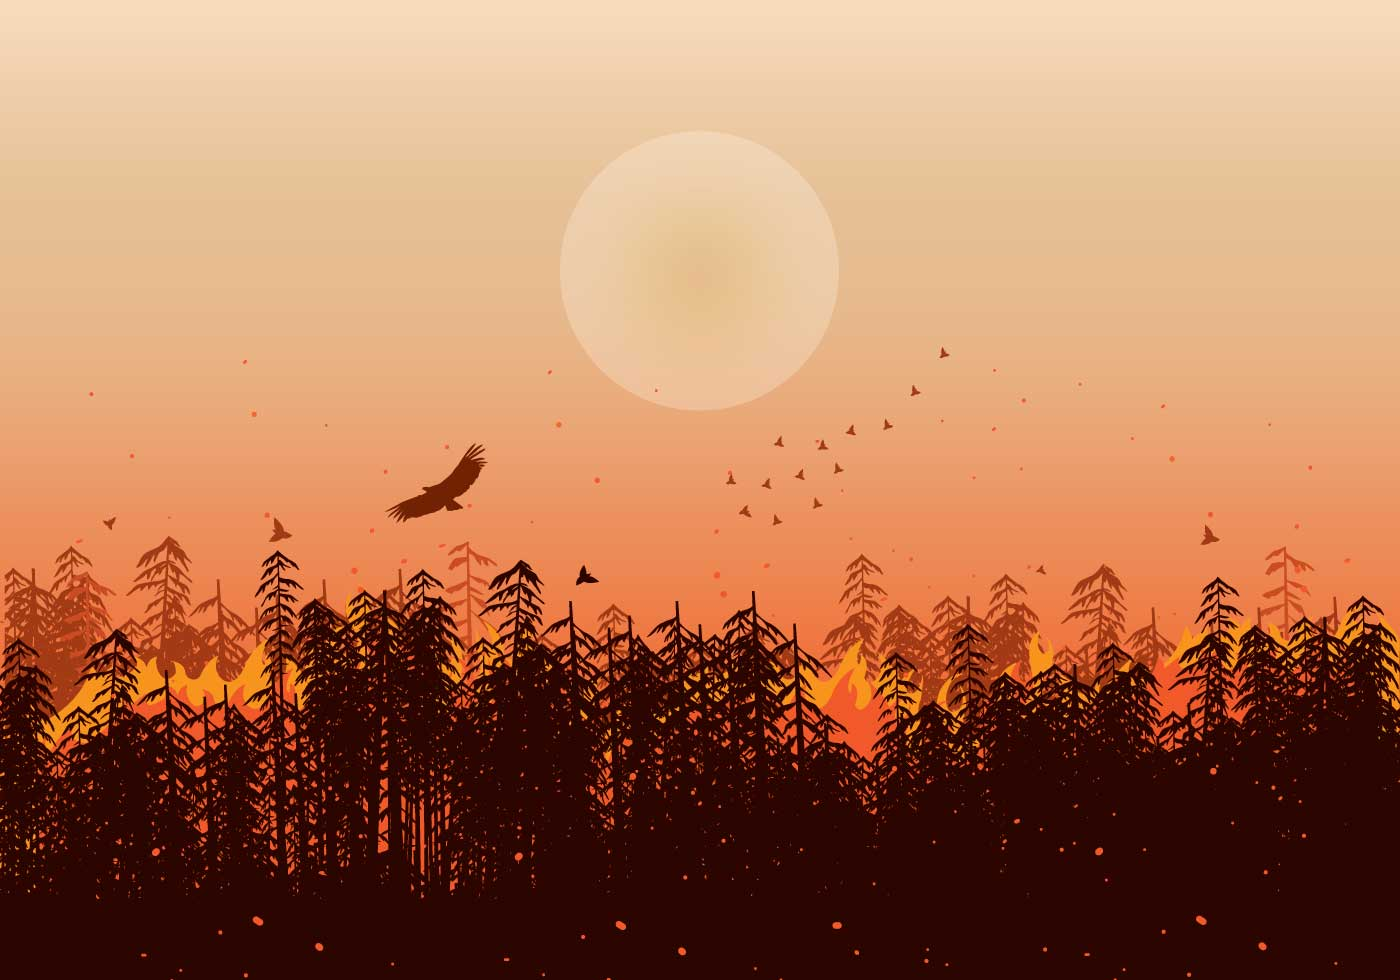 Forest Fires Illustration Silhouette Vector Download